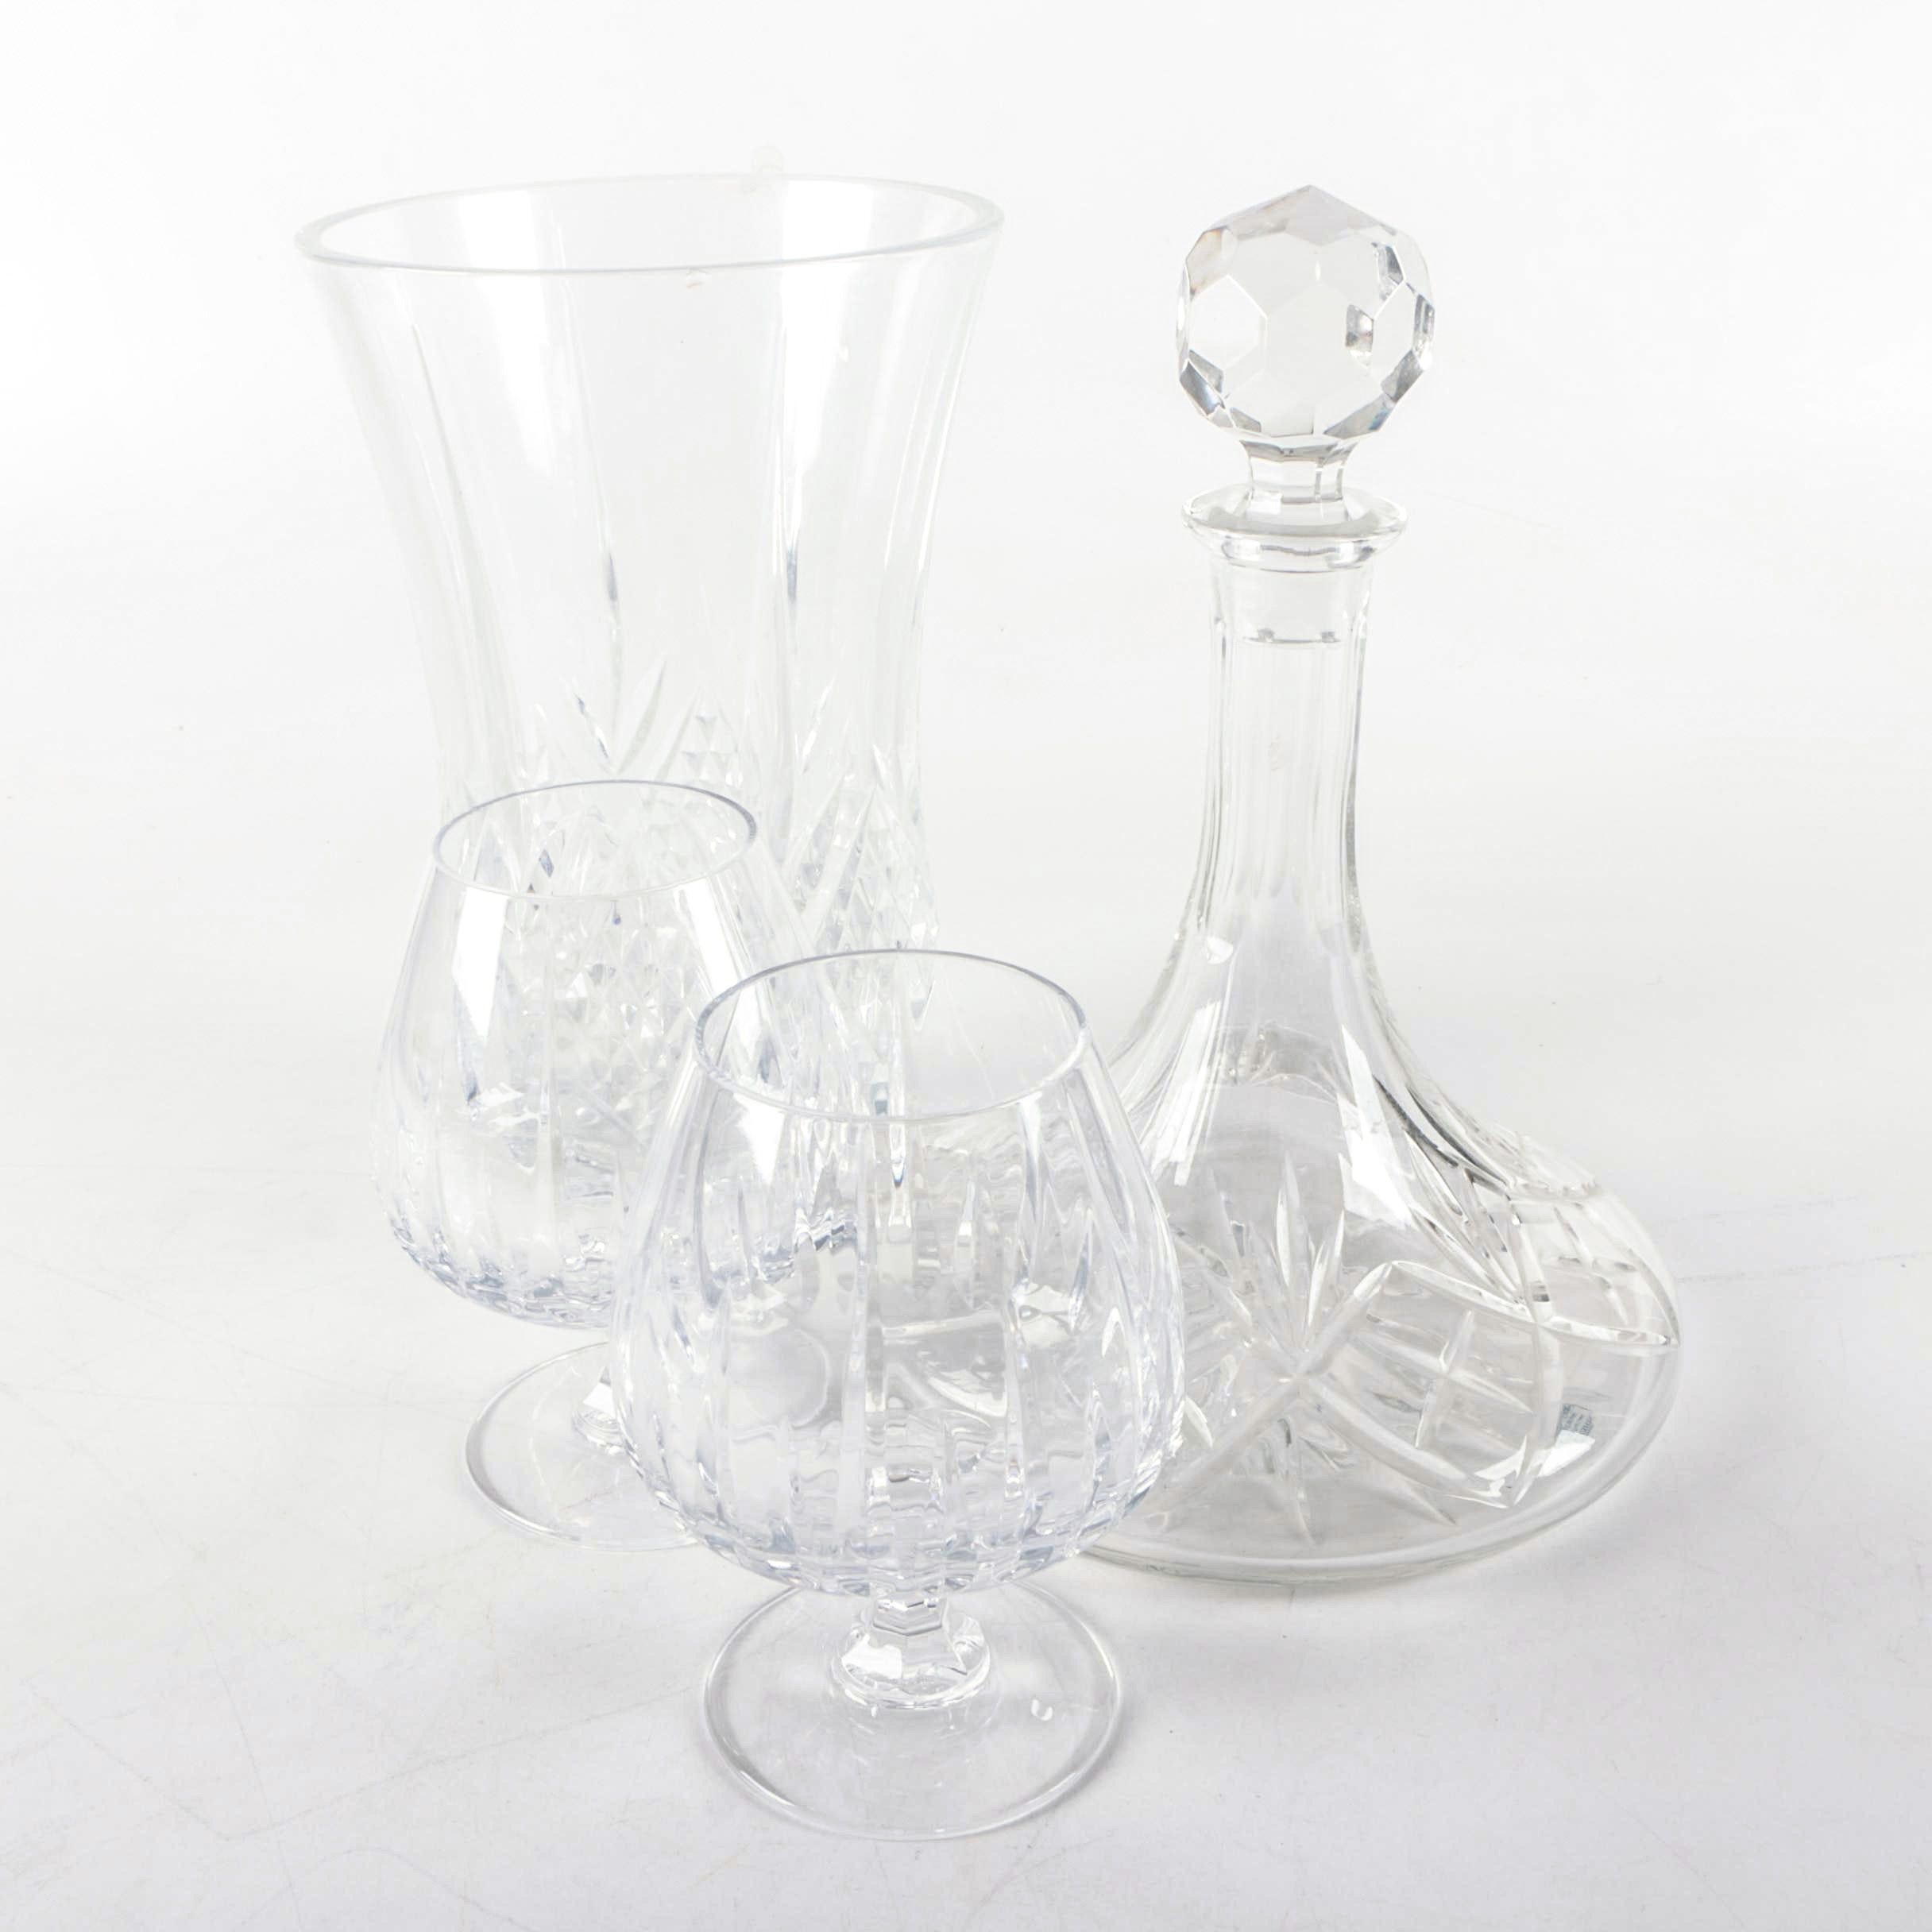 """Samobor """"Illusions"""" Crystal Ships Decanter with Glasses and Vase"""